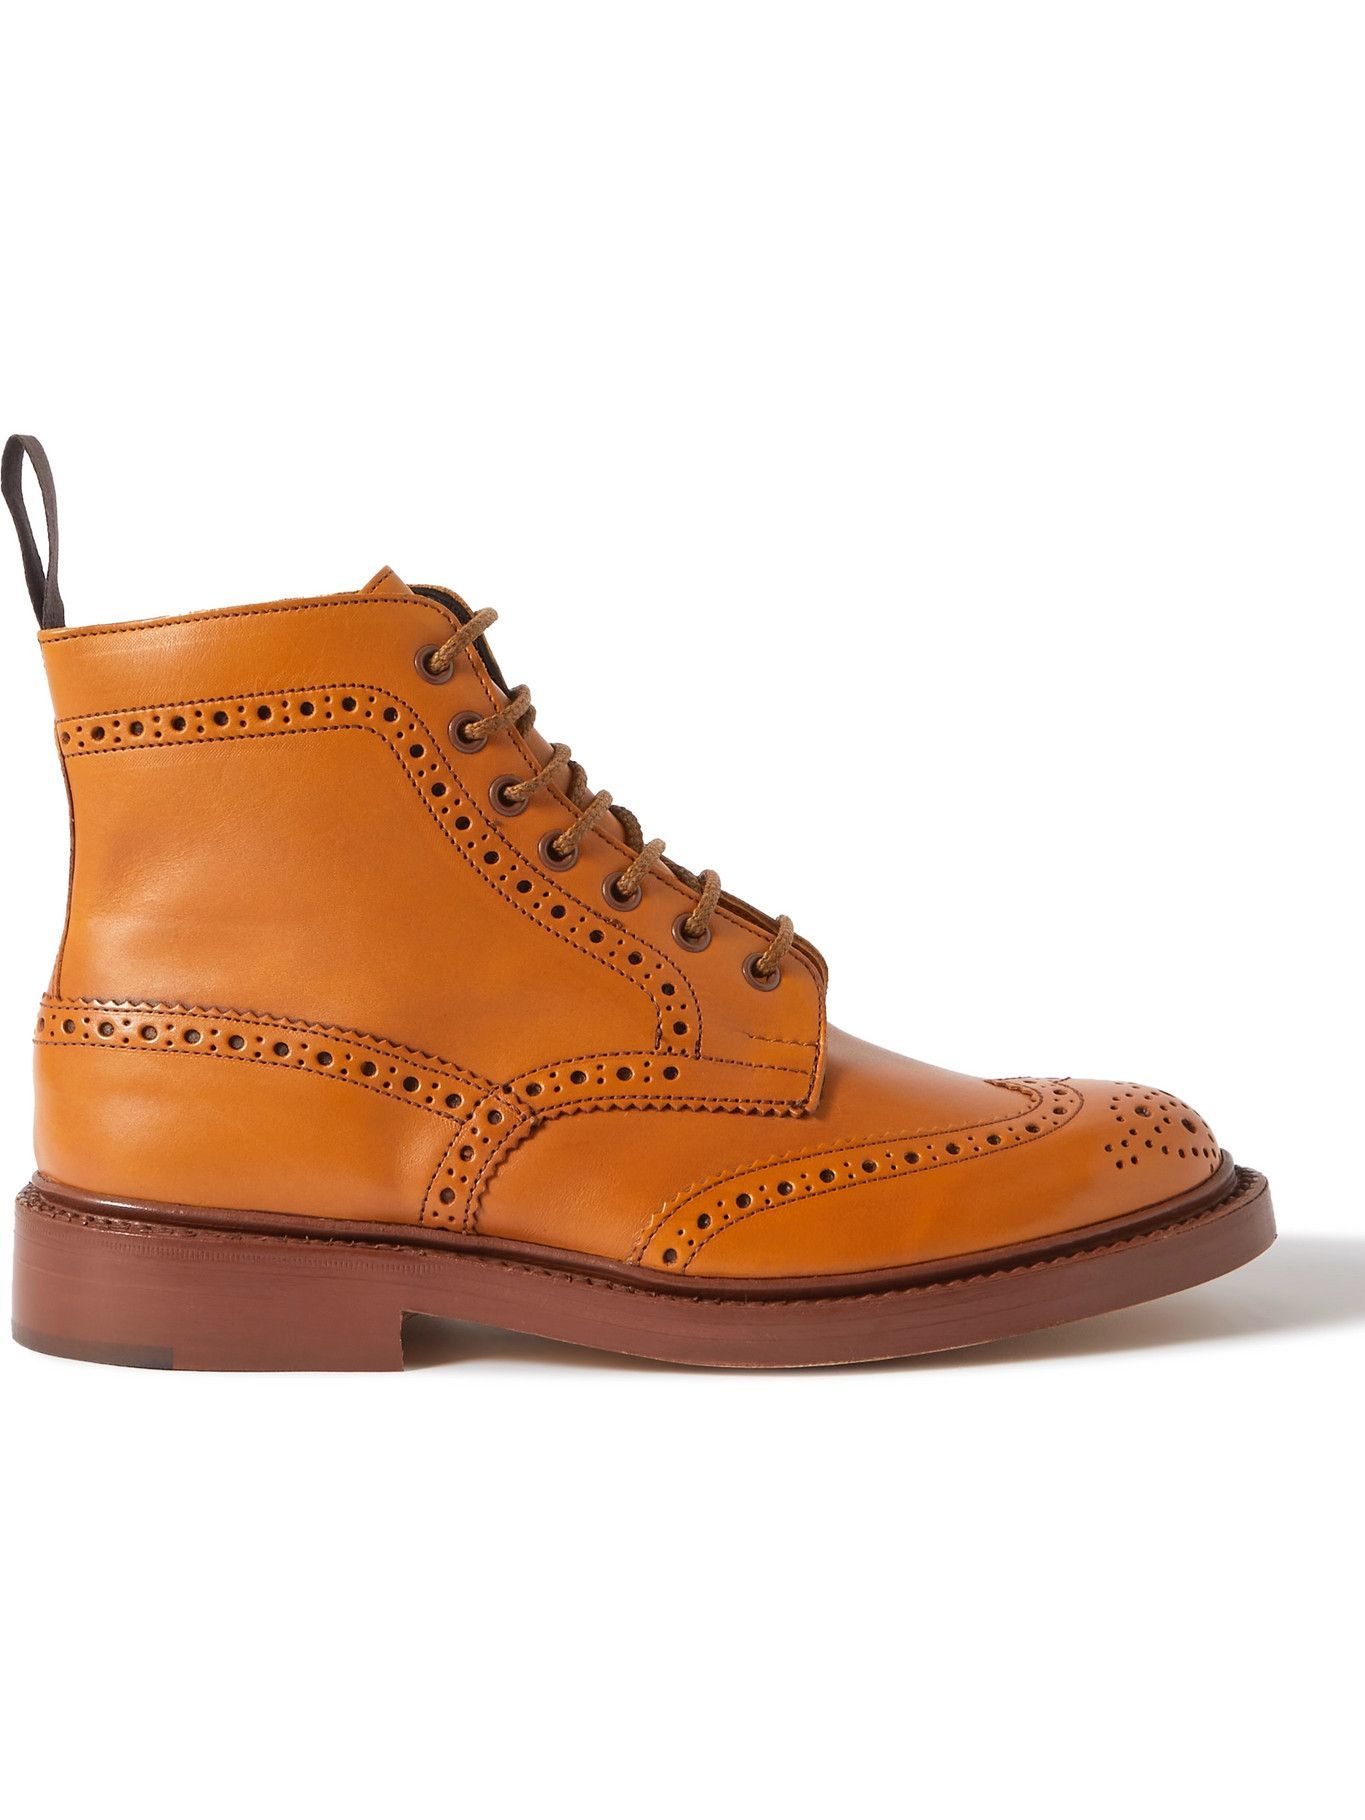 Photo: Tricker's - Stow Leather Brogue Boots - Brown